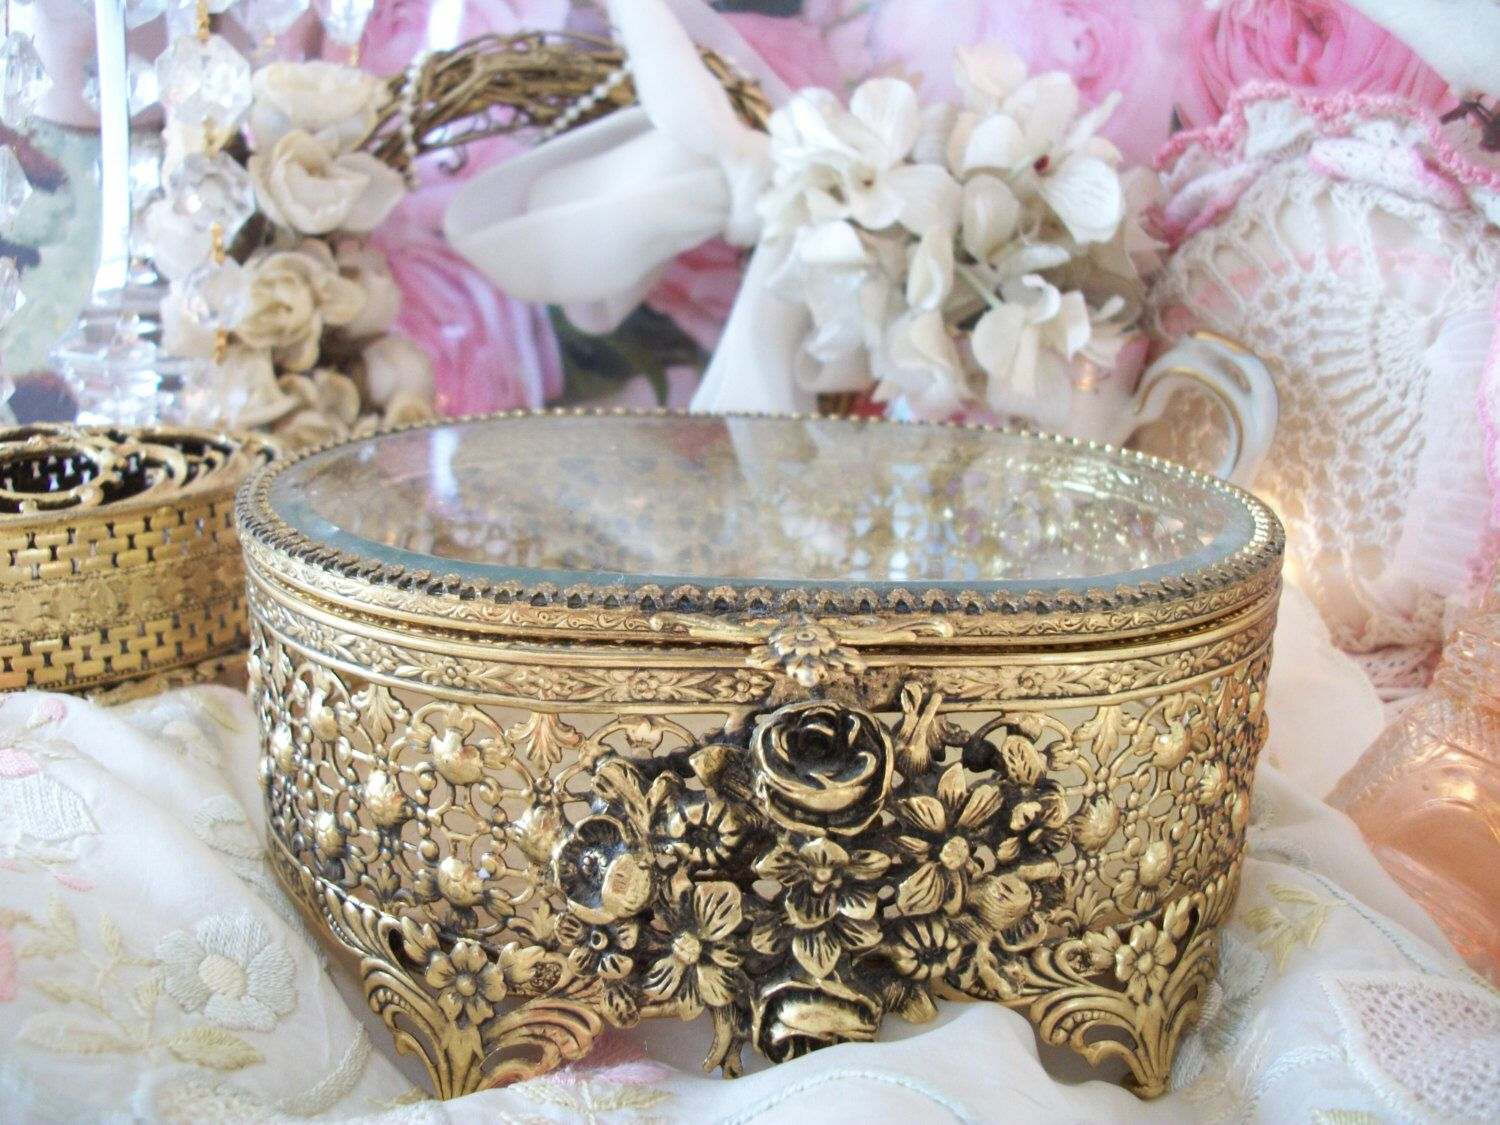 Vintage gold filigree footed oval jewelry box, ornate roses, flower feet…